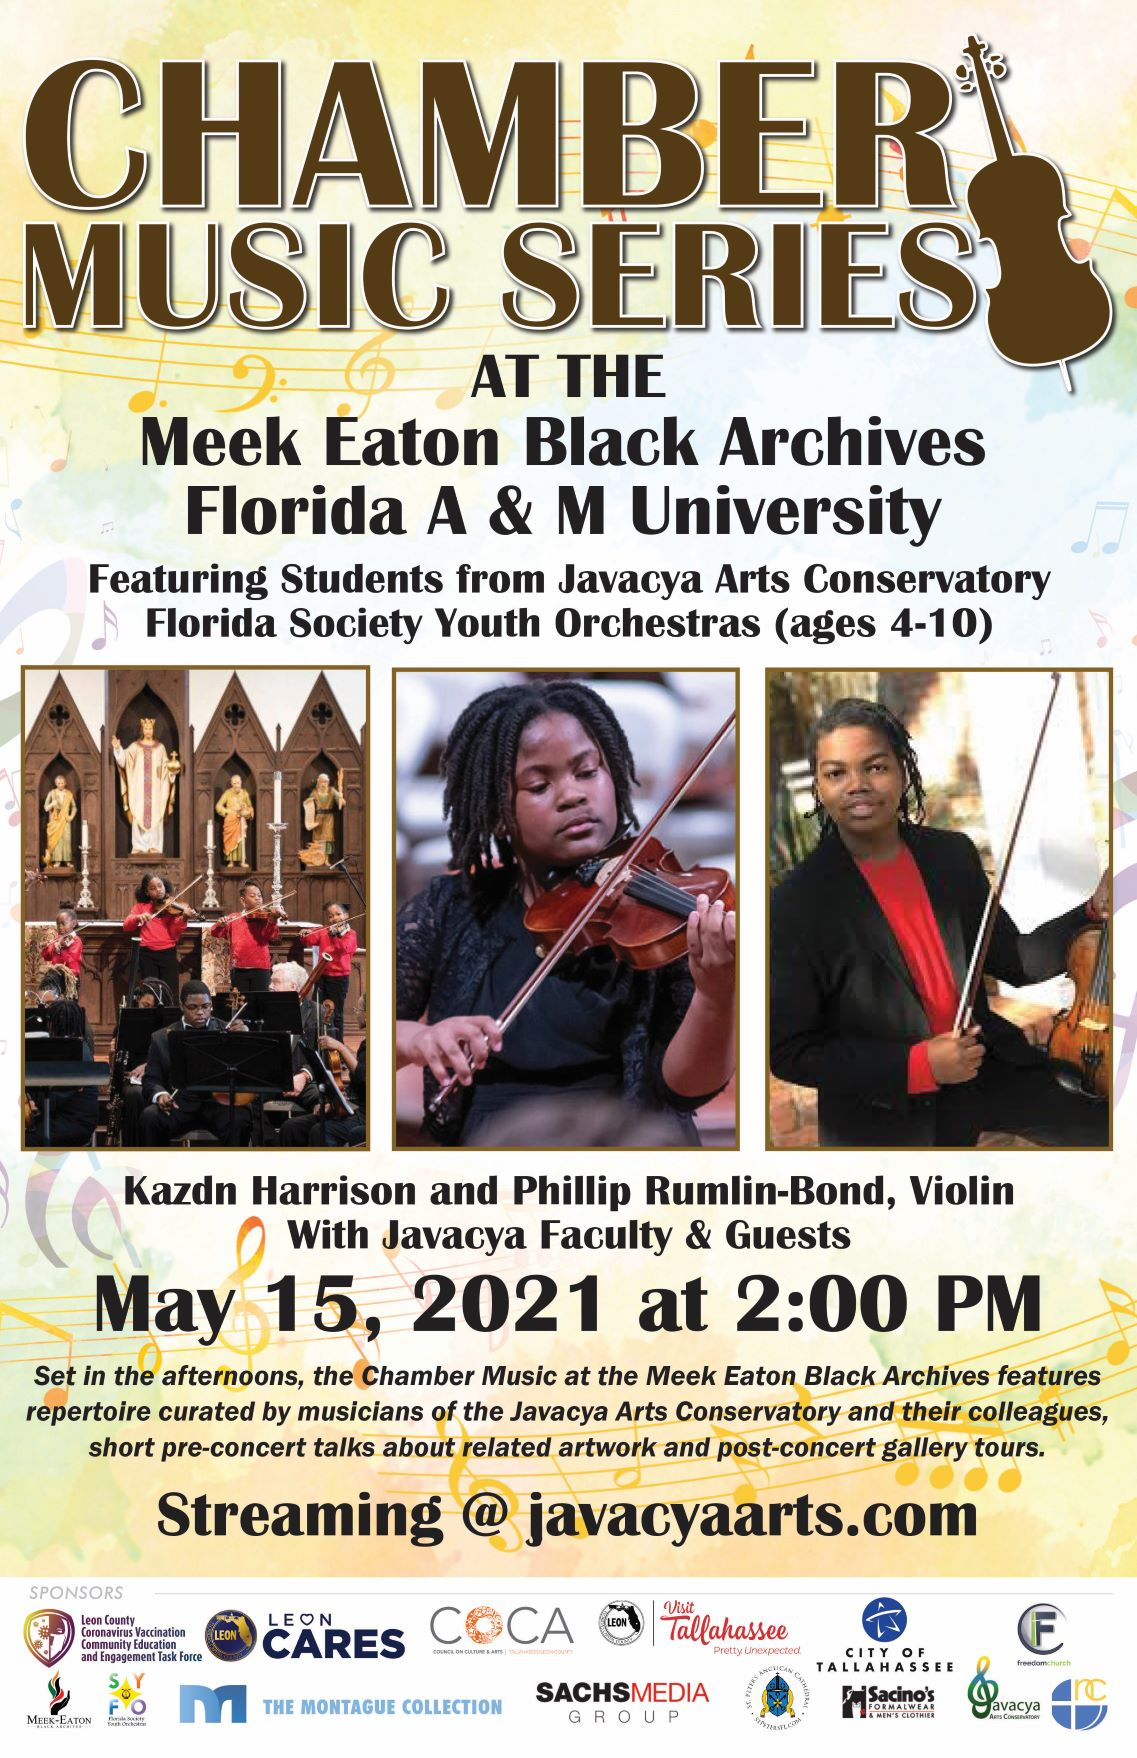 Chamber Music Series at Florida A&M University's Meek Eaton Black Archives